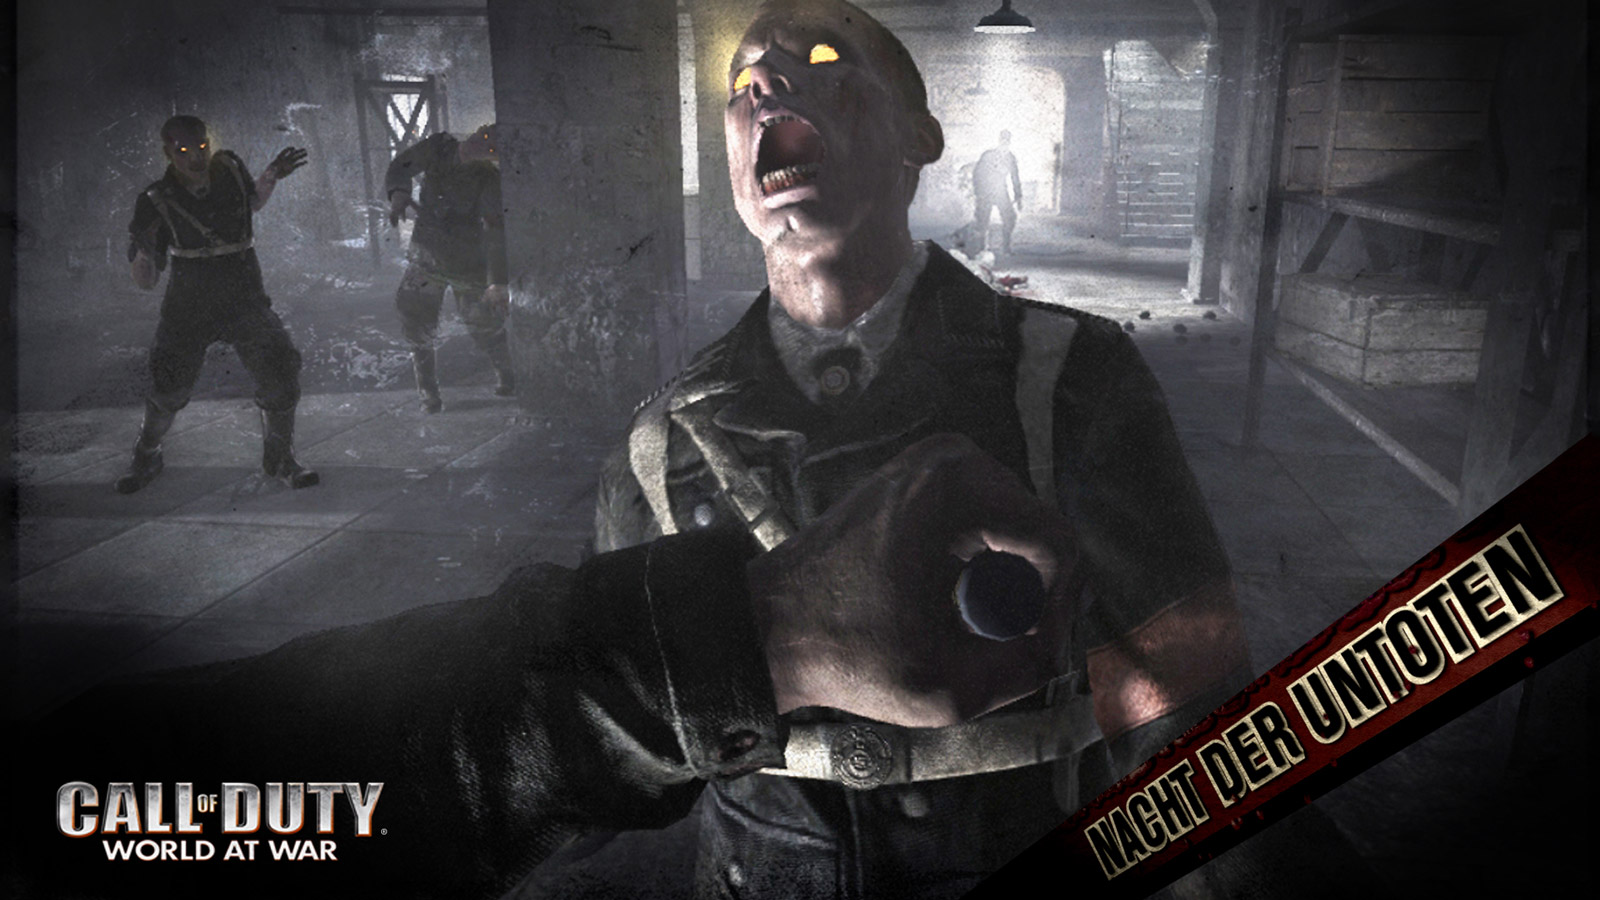 Call of Duty: World at War Wallpaper in 1600x900